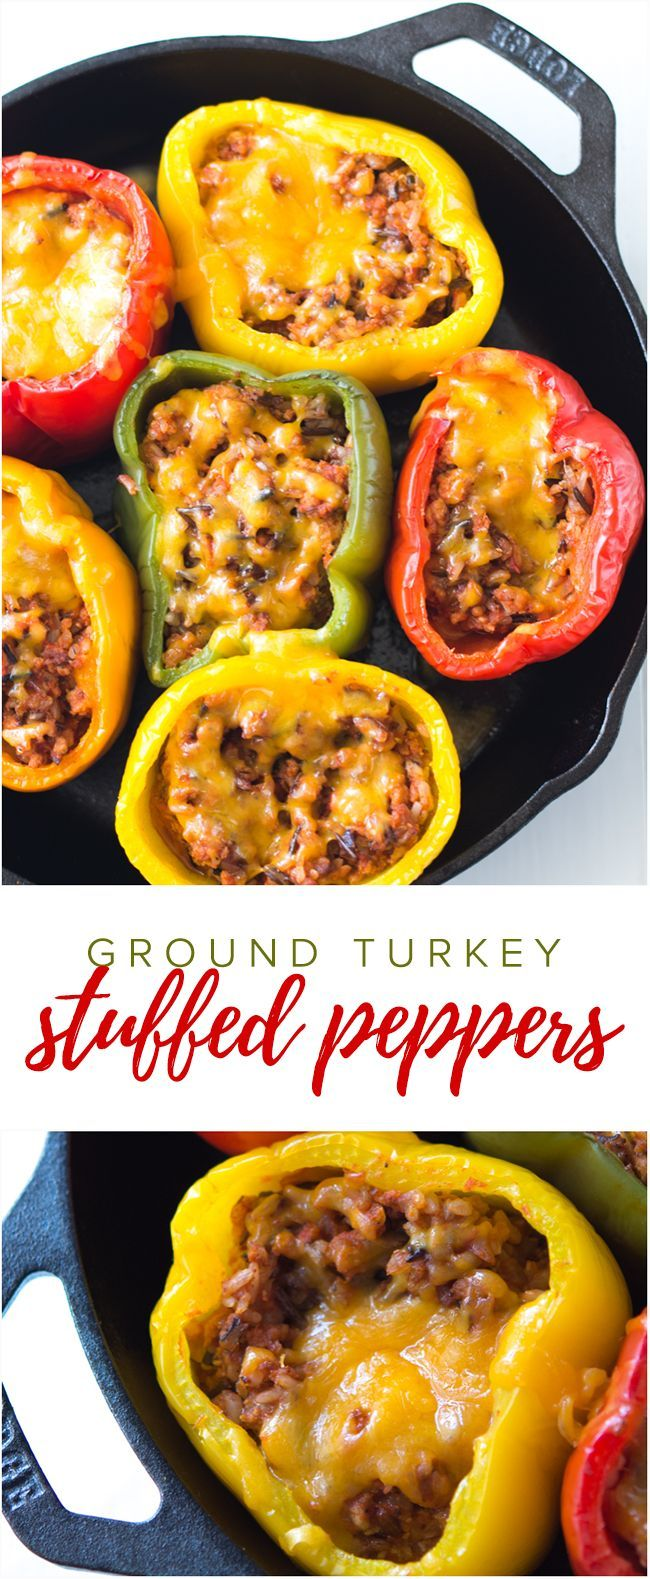 Ground Turkey Stuffed Peppers Recipe